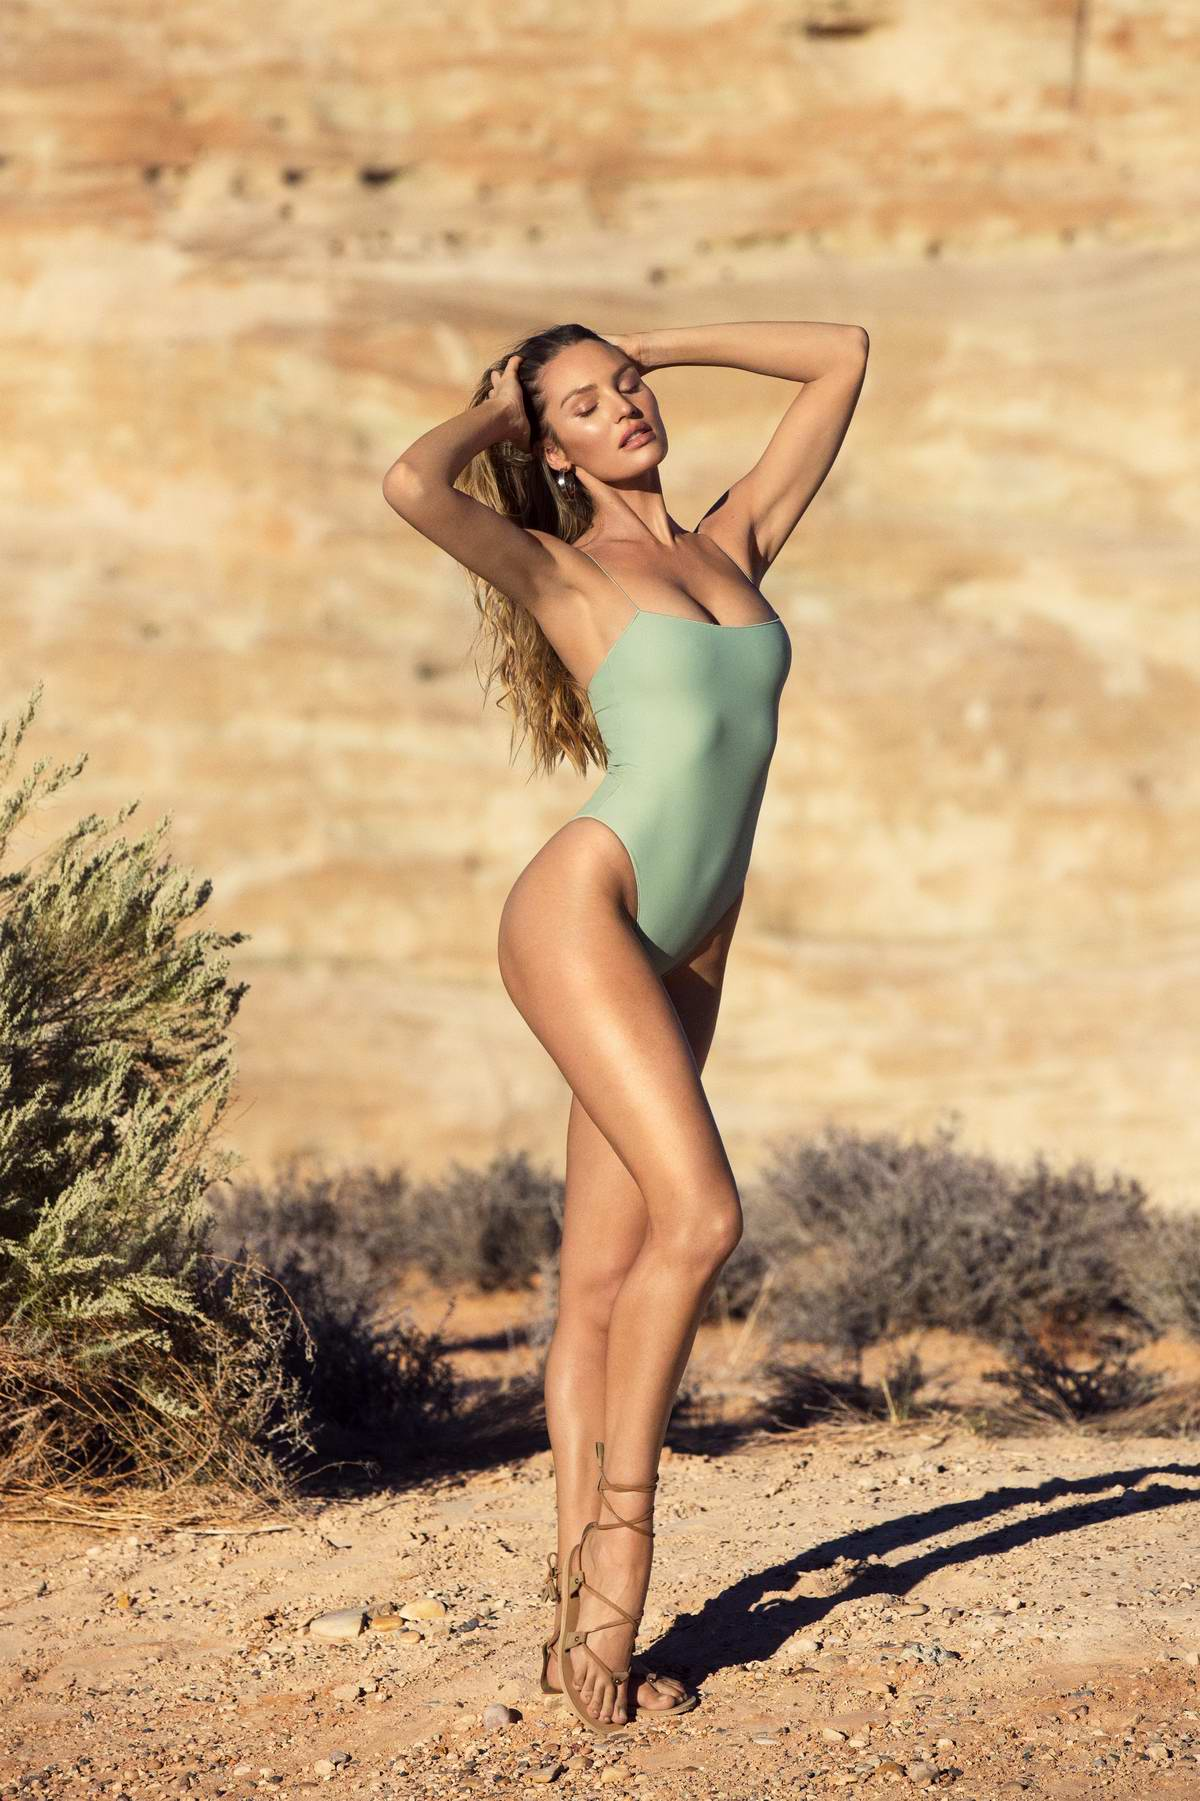 Candice Swanepoel in Tropic Of C Resort Collection 2019 Photoshoot